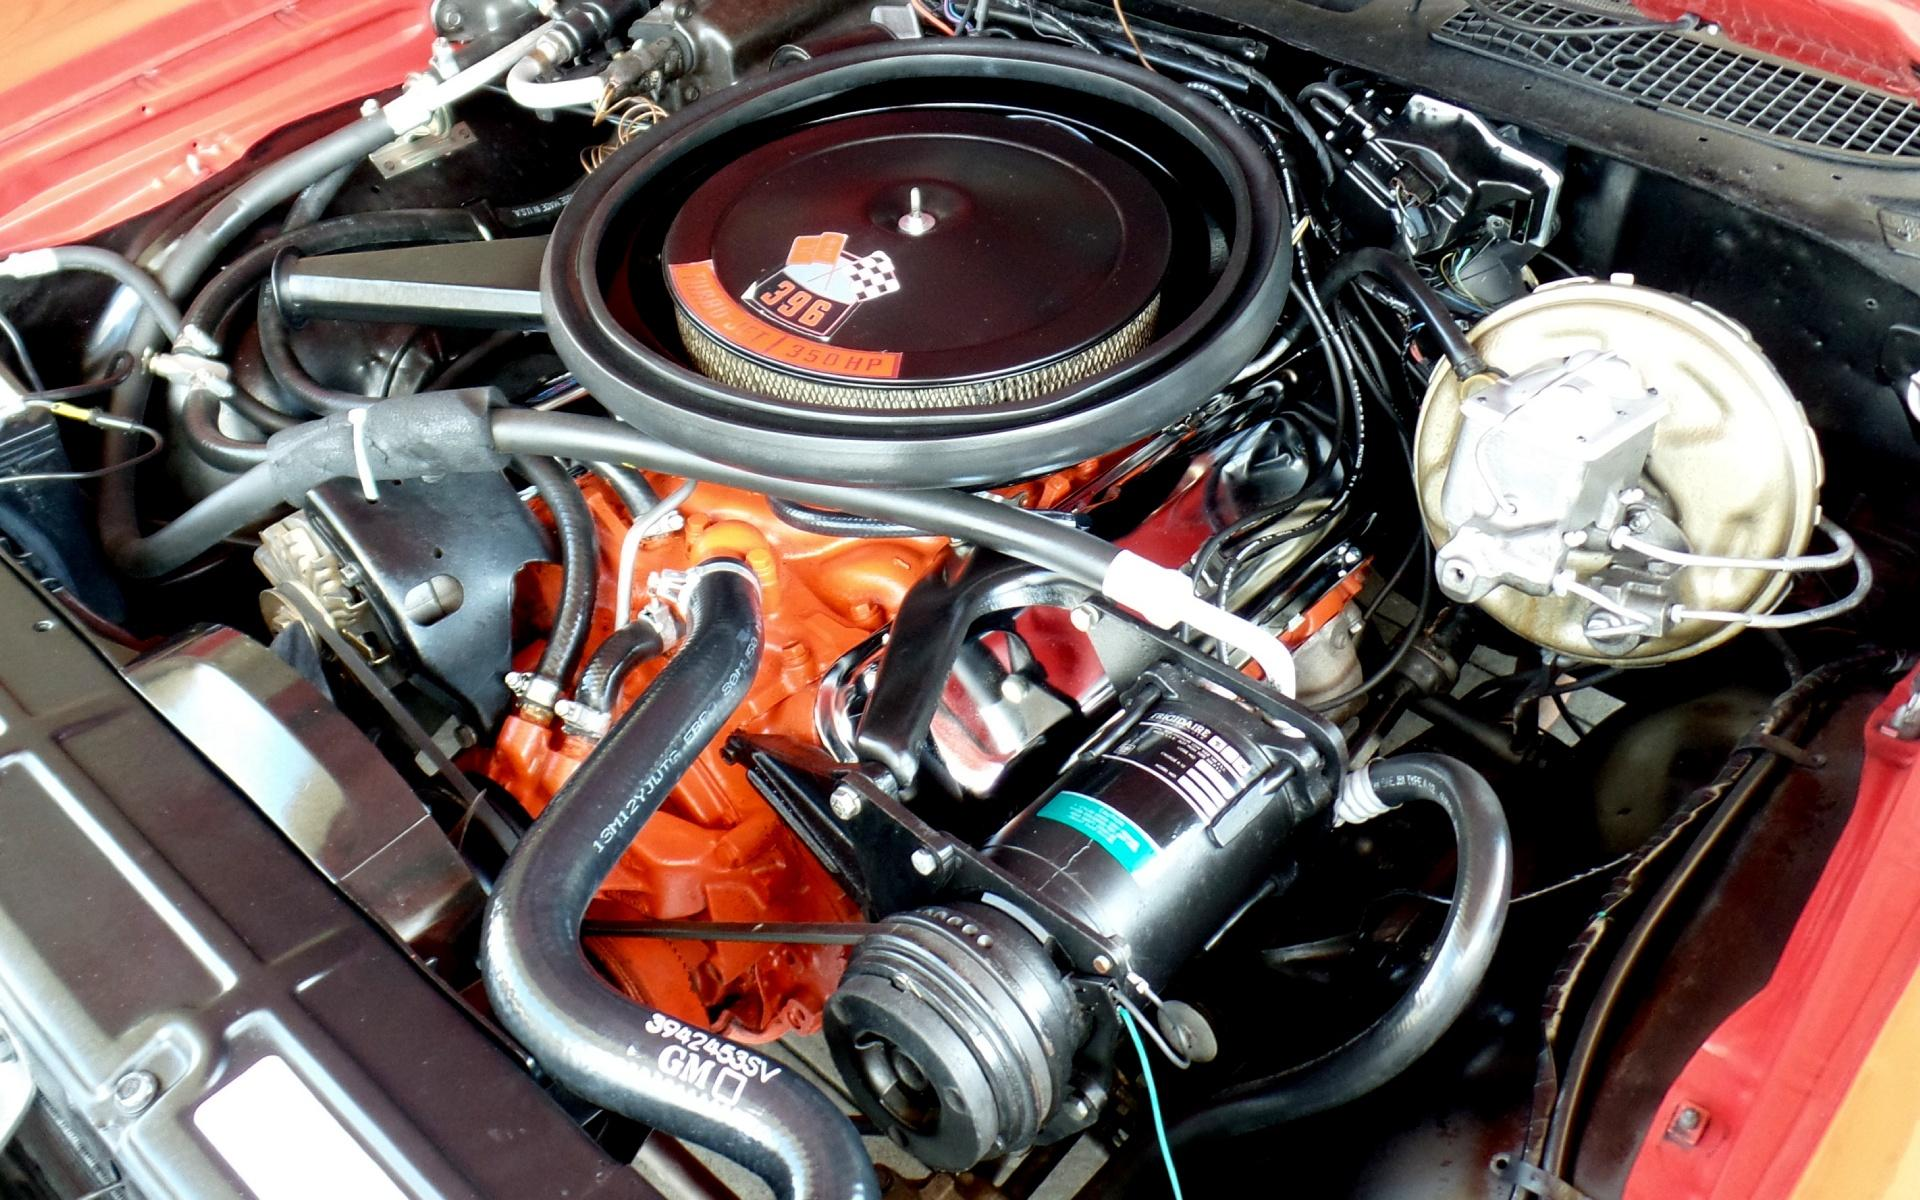 hight resolution of 1970 chevy chevelle air conditioning system 70 chevy 72 chevelle 73 chevelle